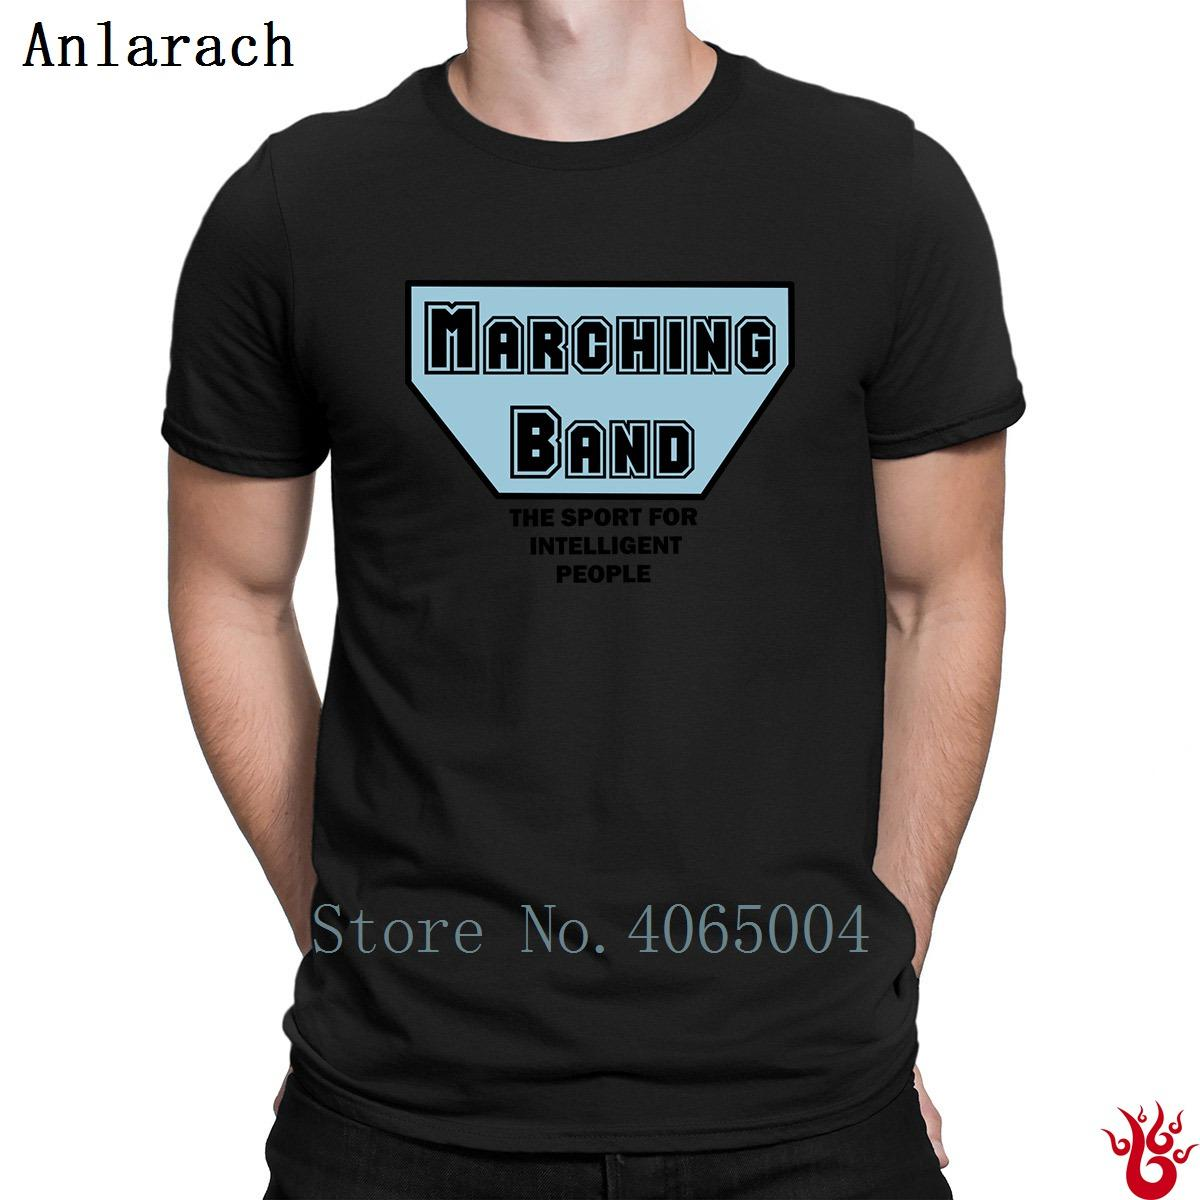 92655a59 Marching Band Tee Shirt Designs – EDGE Engineering and Consulting ...